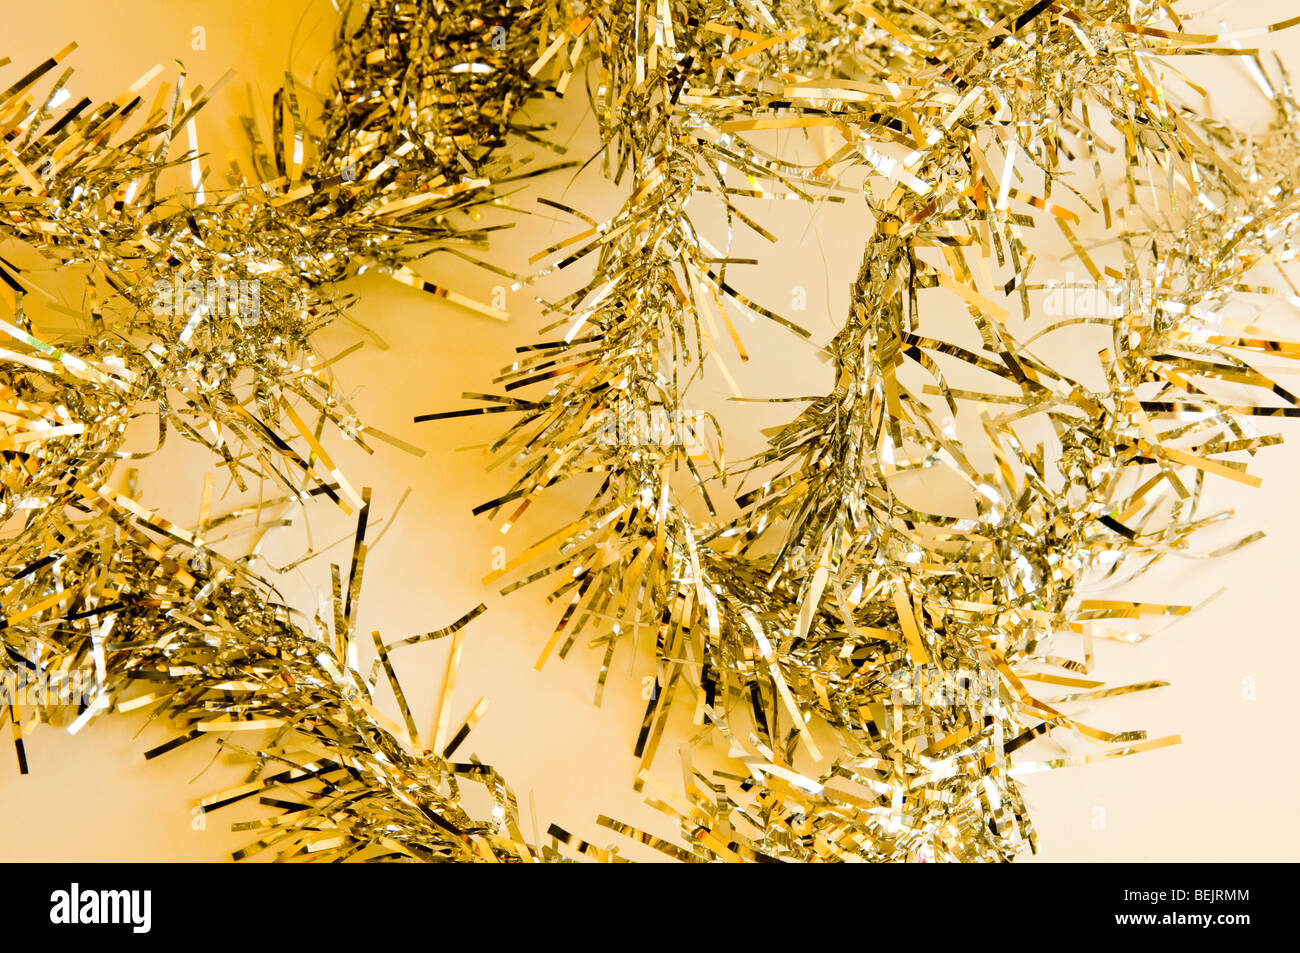 Gold Tinsel Background for Xmas - Stock Image